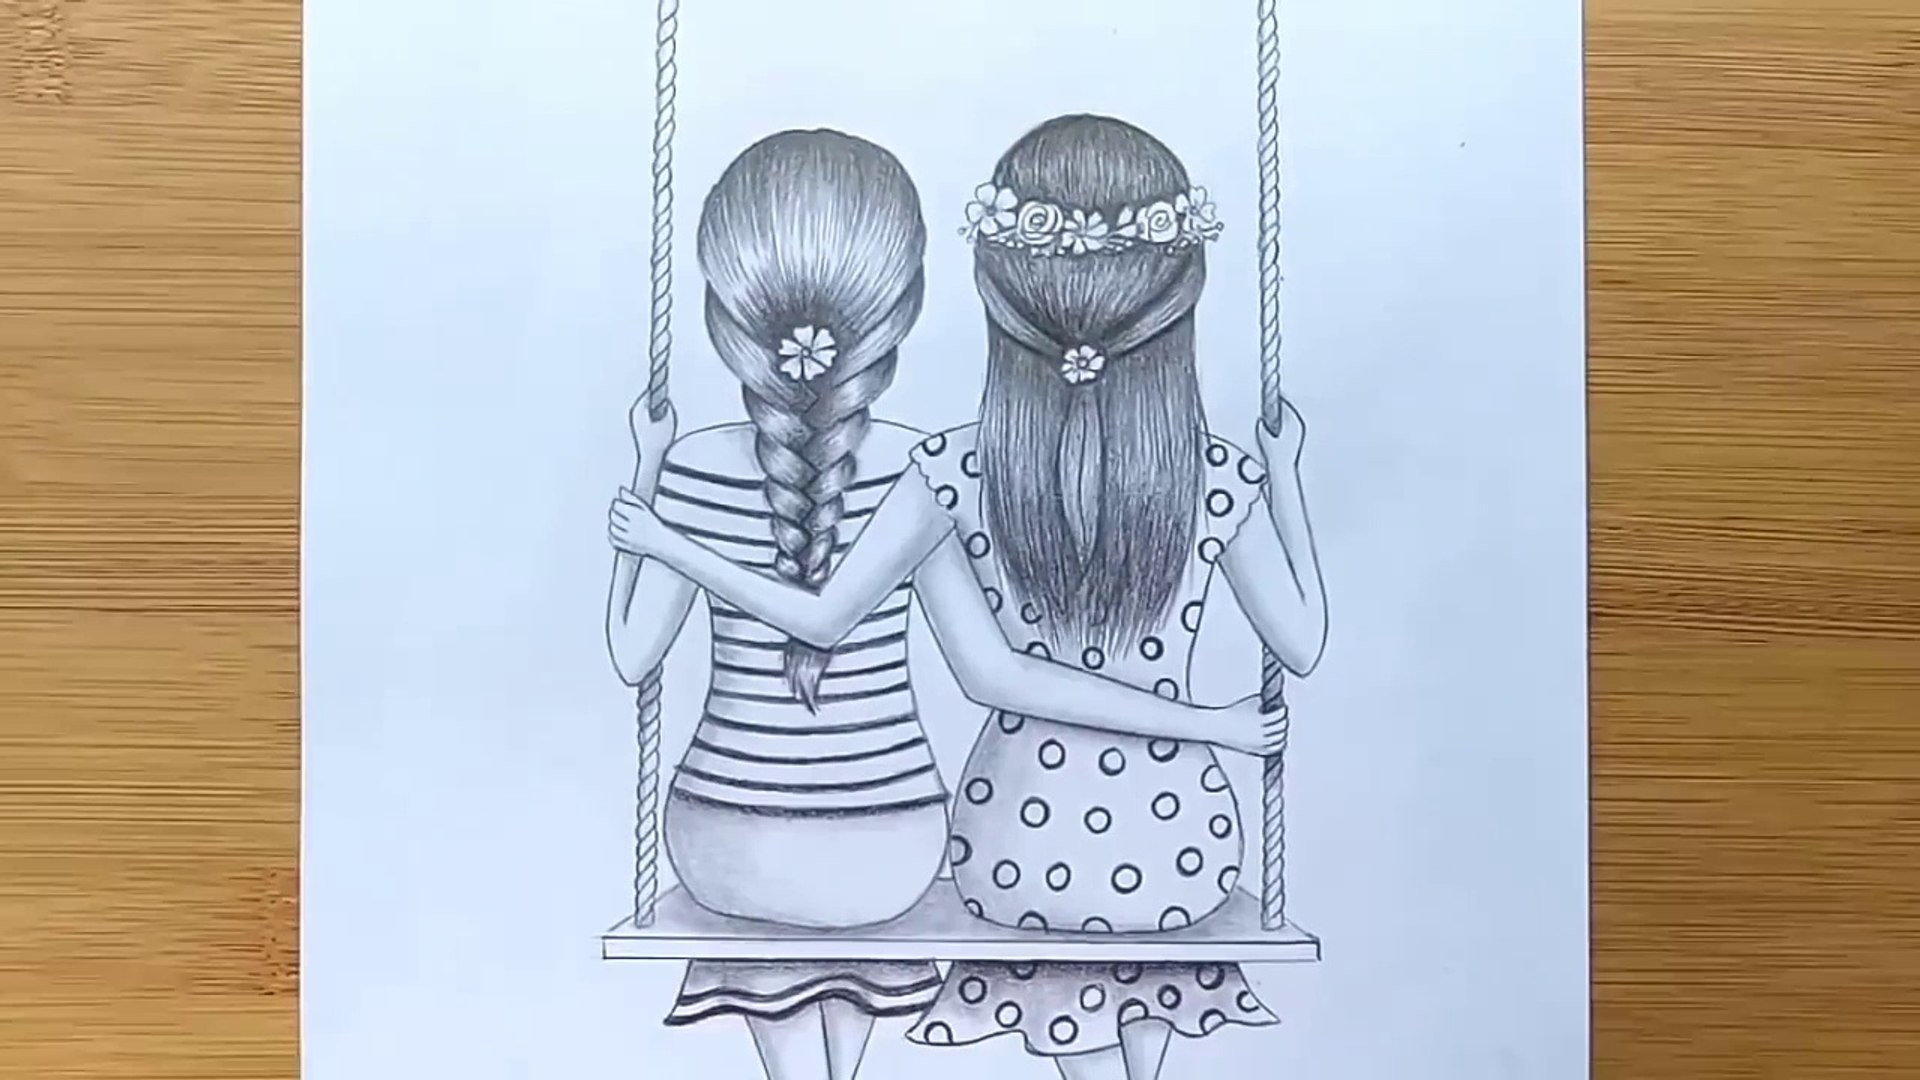 How To Draw Best Friends Sitting Together On A Swing Pencil Sketch Tutorial Video Dailymotion